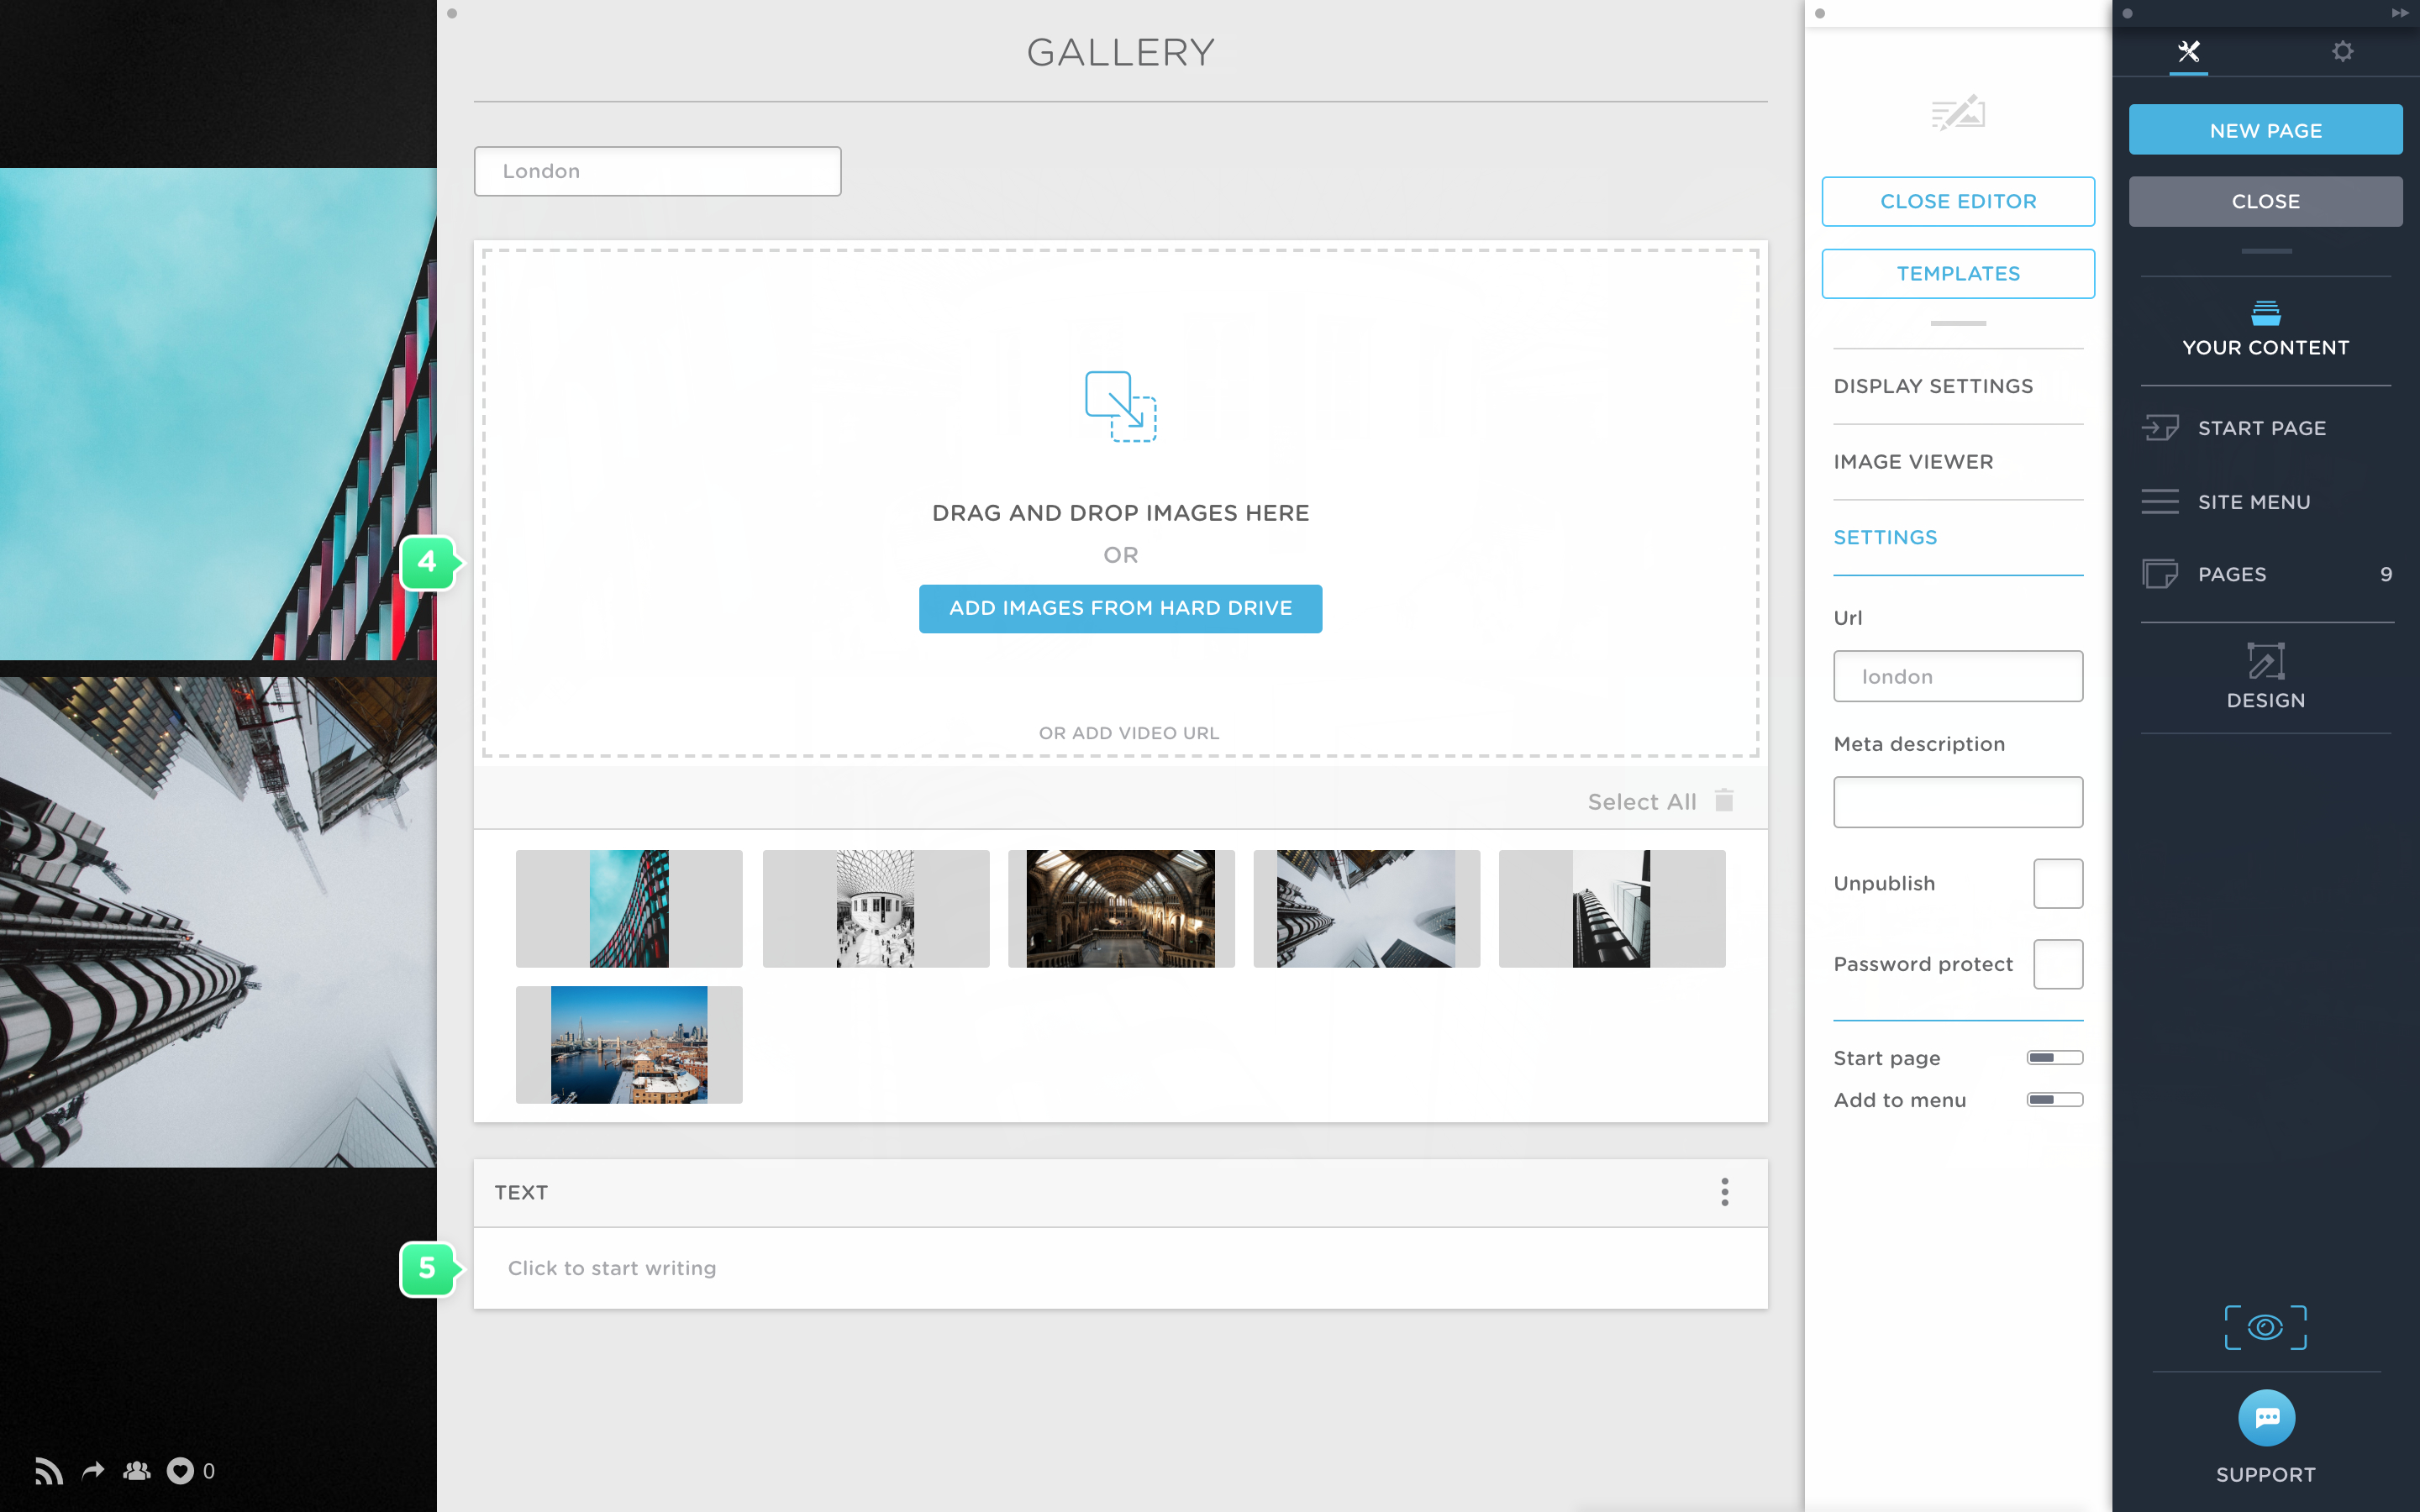 Upload images to a gallery in Portfoliobox